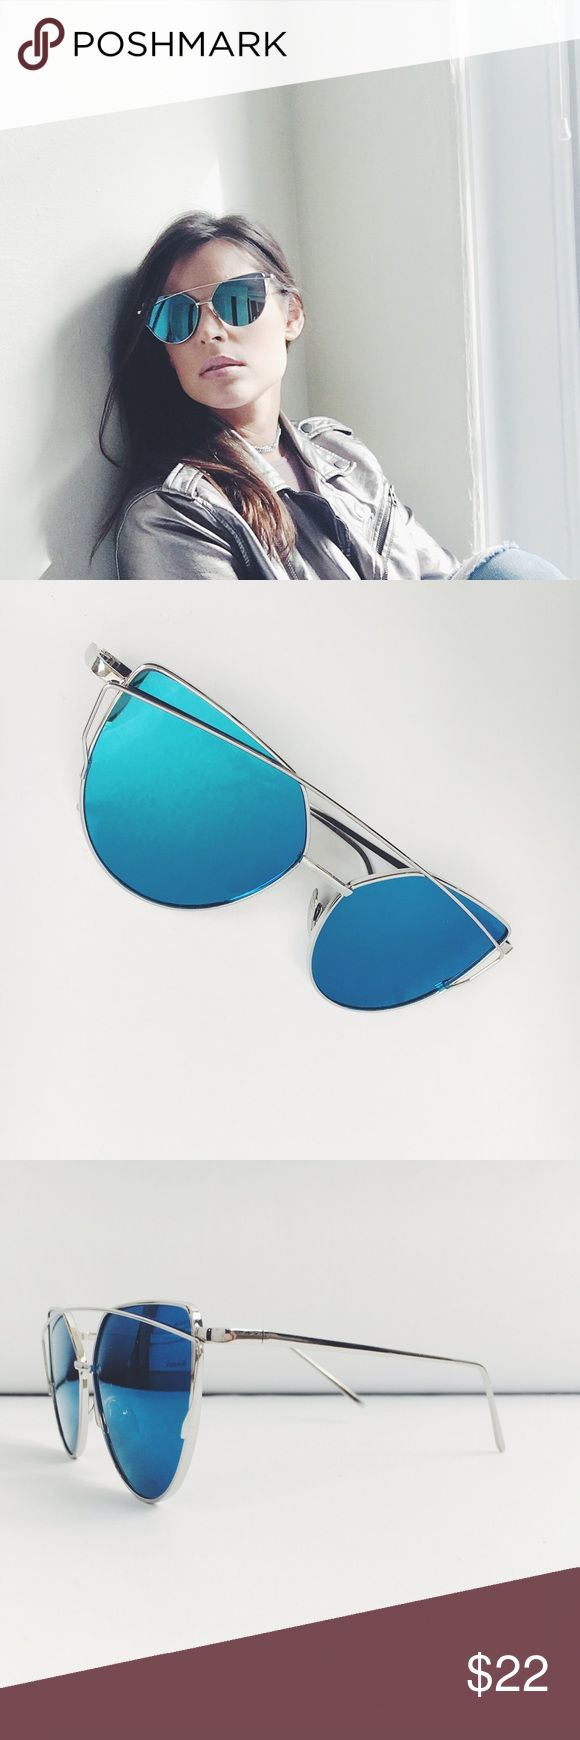 Blue & Silver Cat Eye Aviator Mirrored Sunnies NWT boutique item. Trend Alert❣ Cat Eye Aviator Sunnies! Silver Frame & Blue Lens. Material: Polycarbonate, Frame Material: Copper. Lens Optical Attributes: Mirror, UV400, Anti-Reflective. Other colors available, Please contact me for other colors Accessories Sunglasses